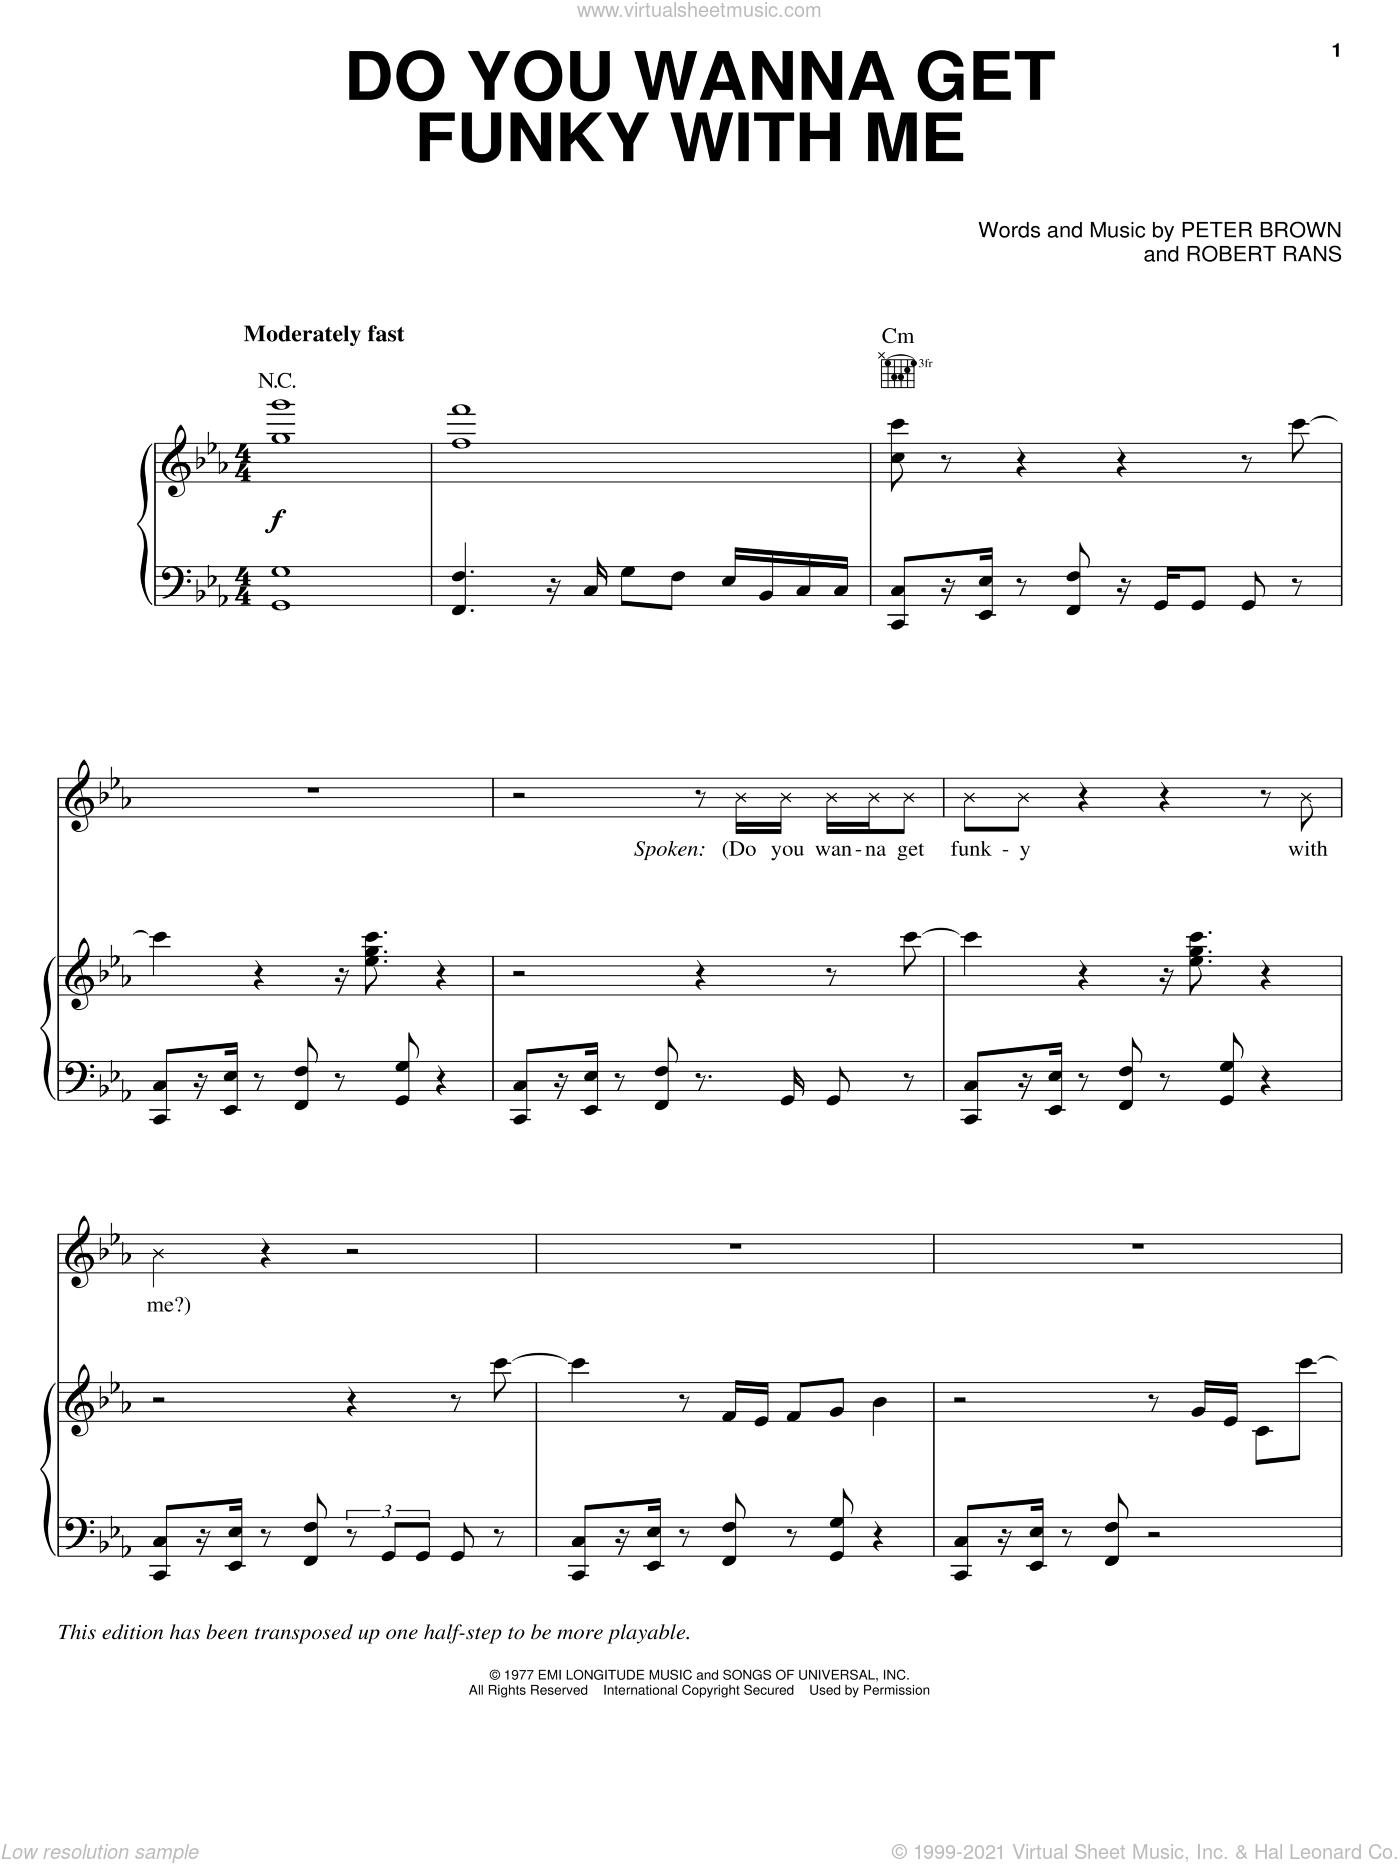 Do You Wanna Get Funky With Me sheet music for voice, piano or guitar by Pete Brown and Robert Rans, intermediate skill level